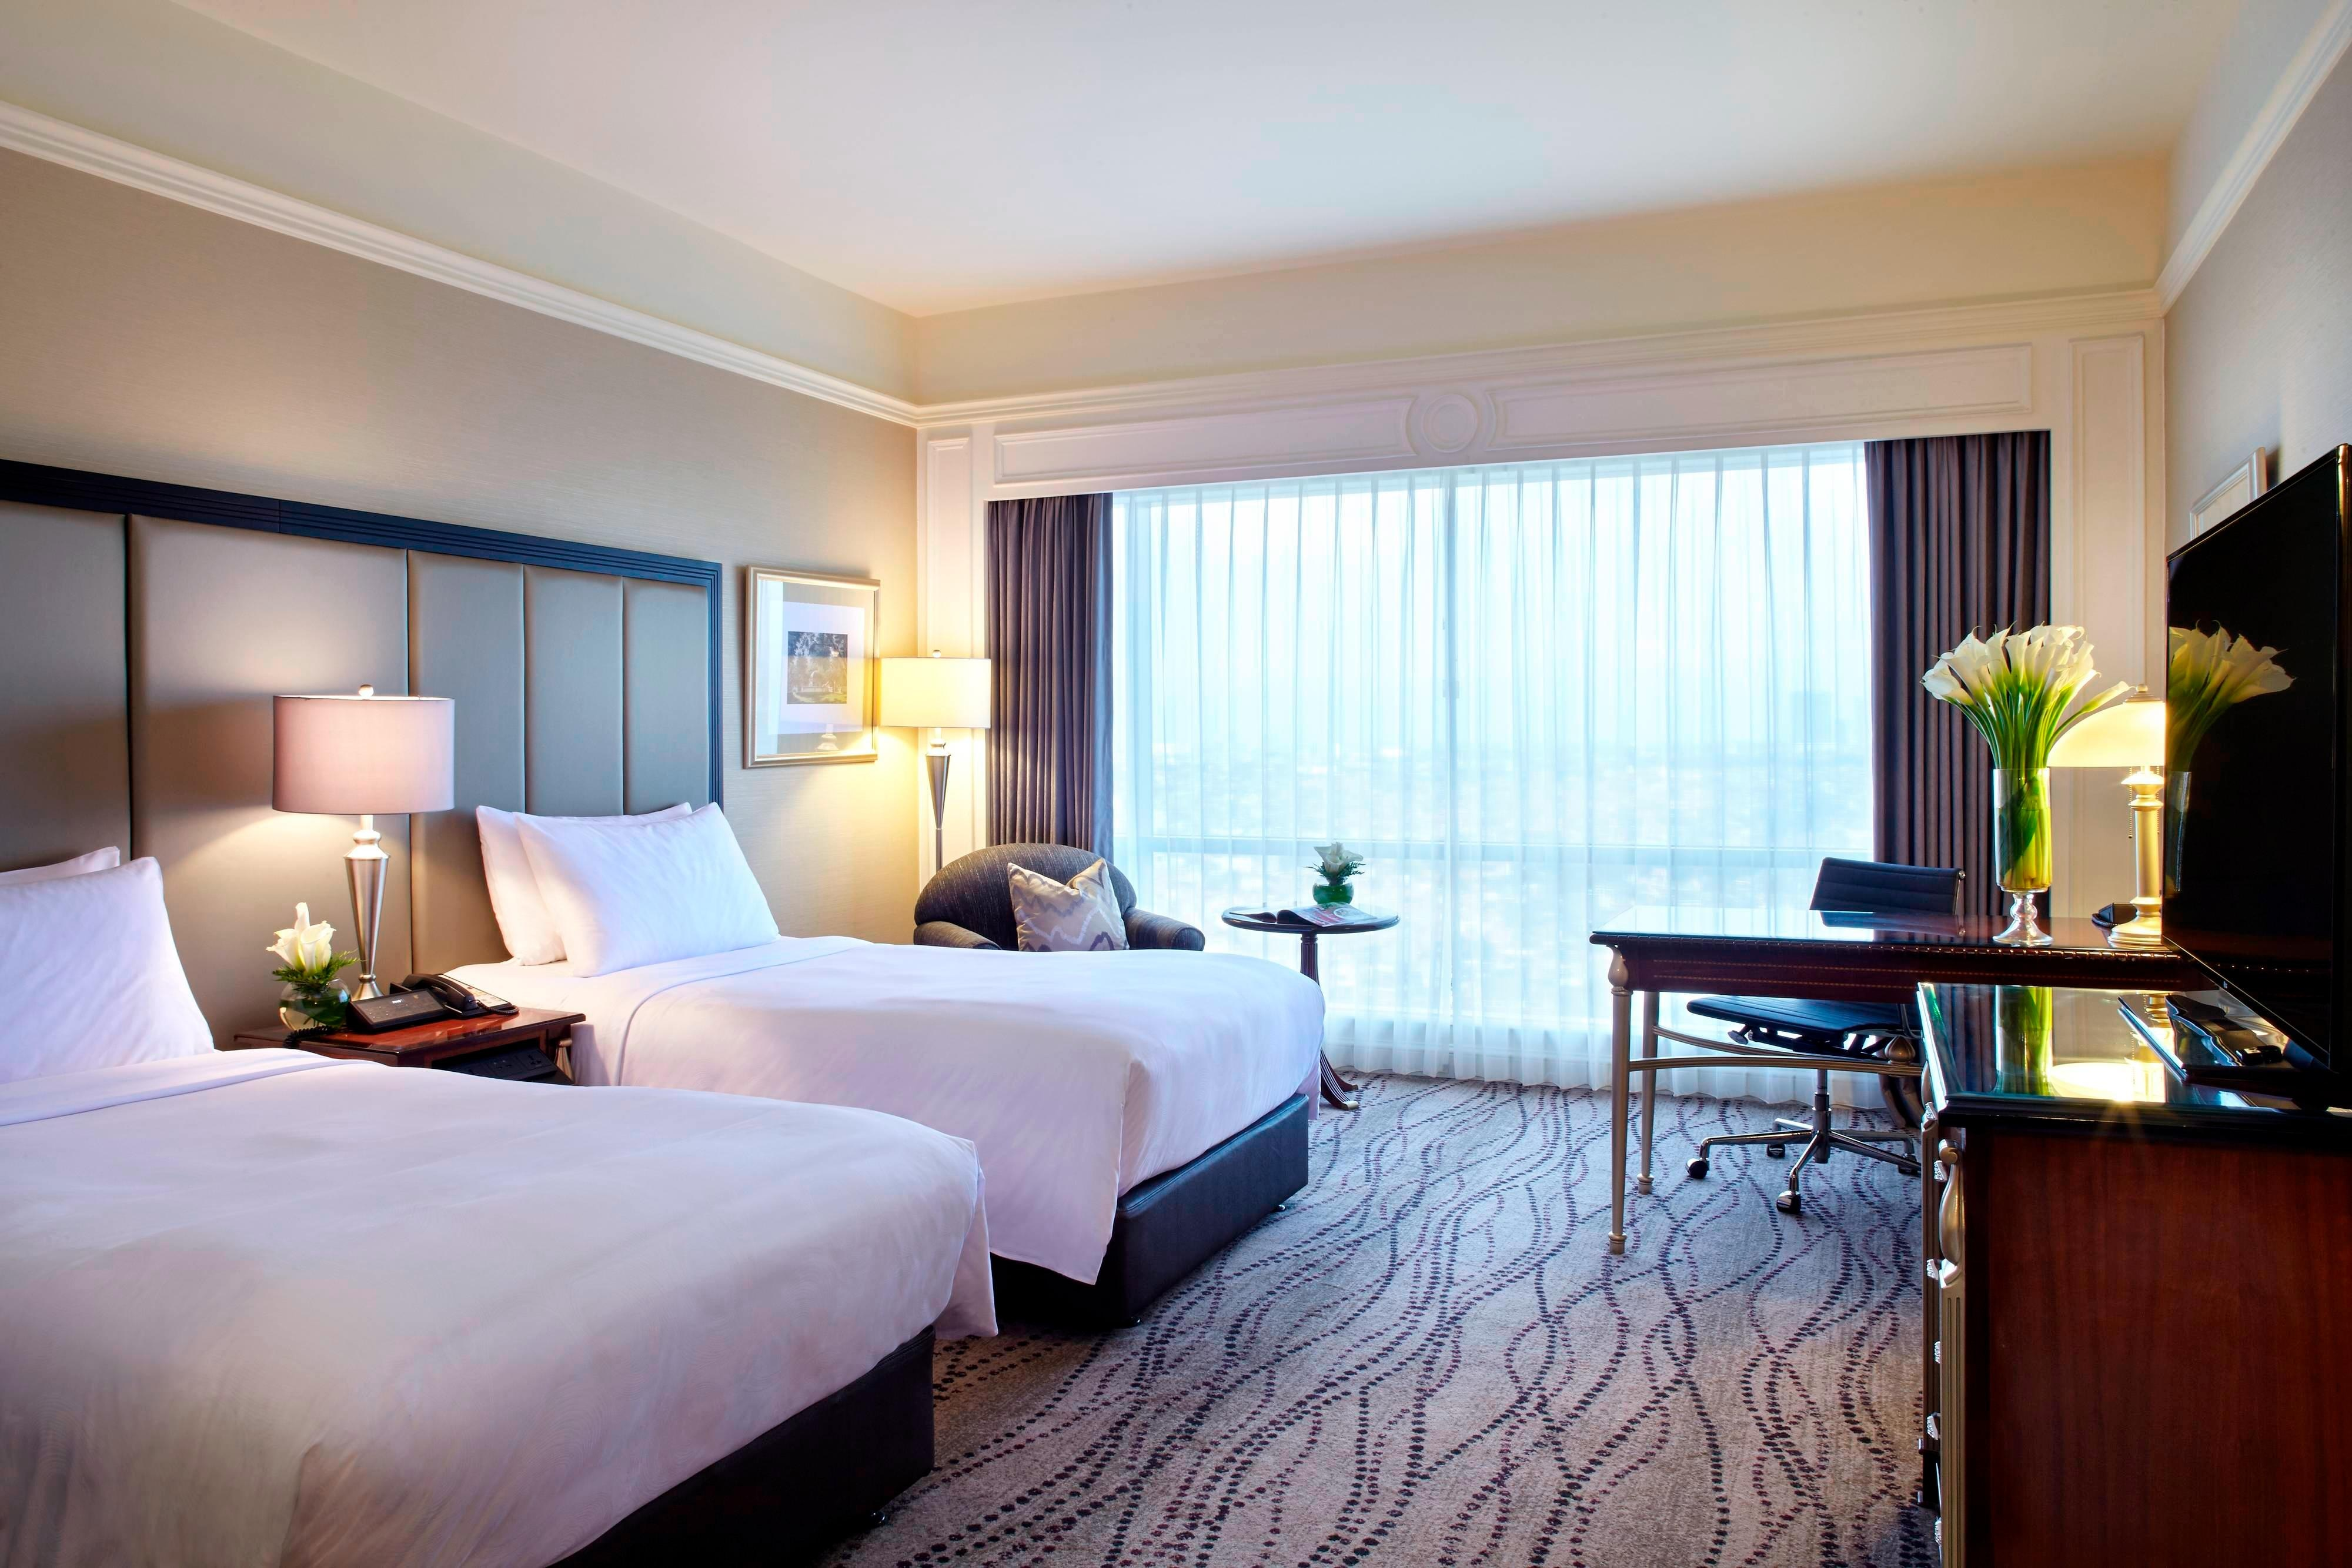 Surabaya Indonesia Hotel Accommodation Jw Marriott Voucher Rich Palace Deluxe Premium Executive Guest Room Twin Bed